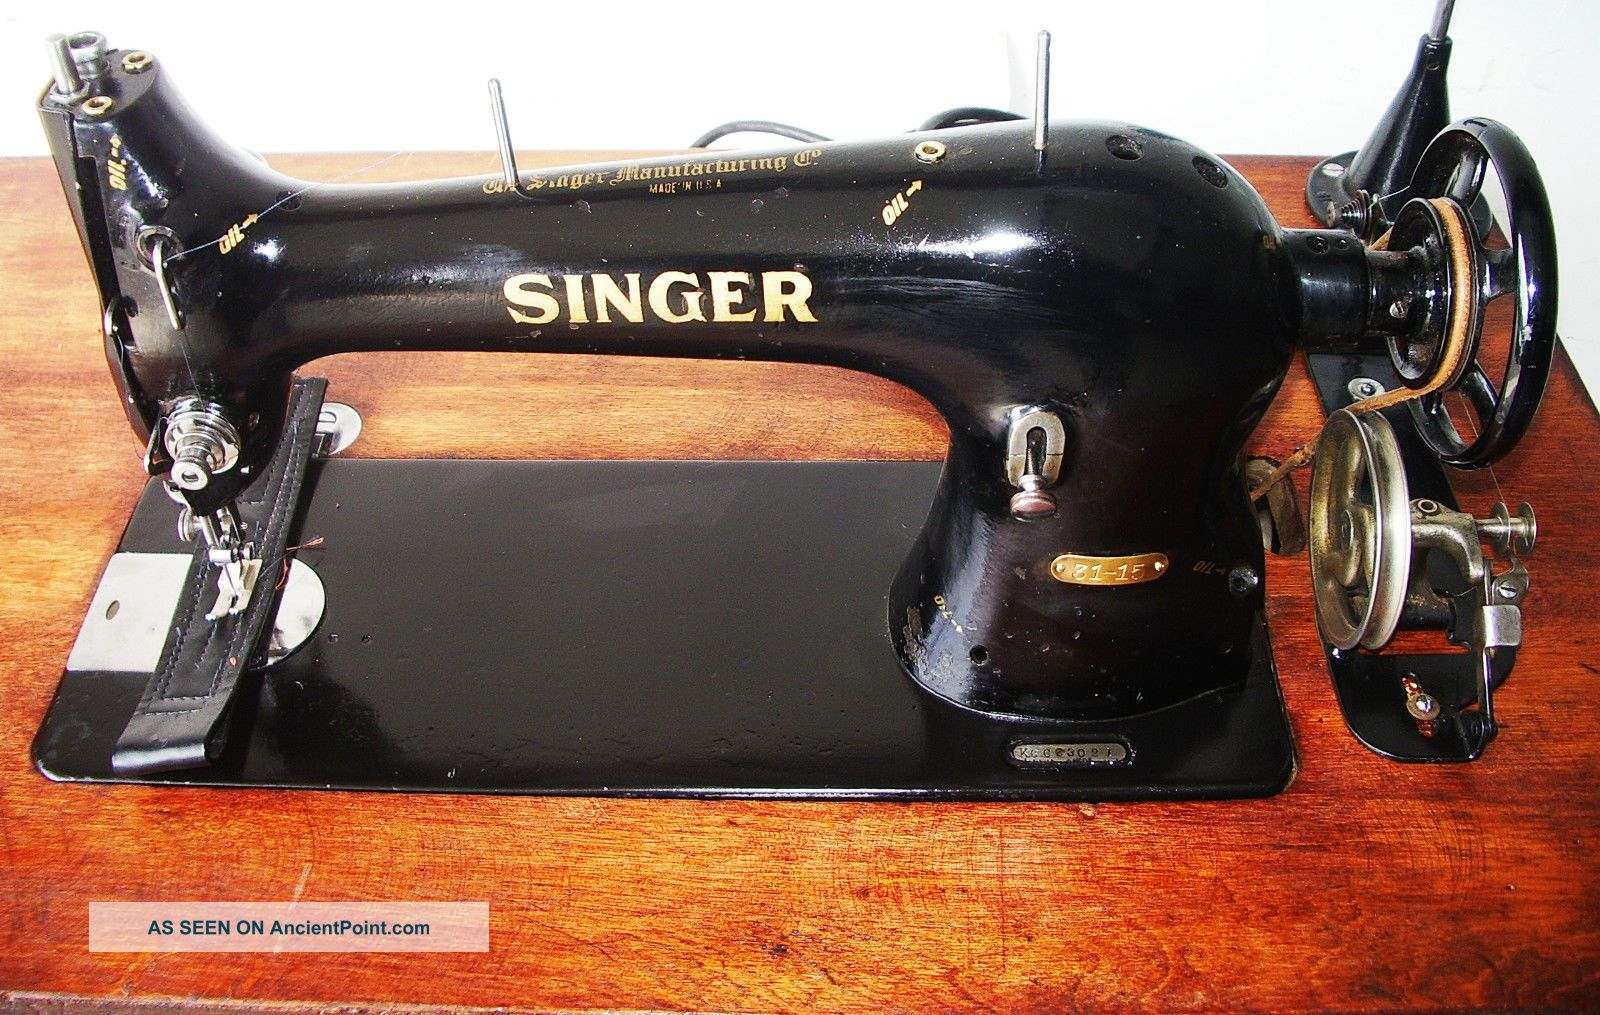 Singer 31 - 15 Industrial Antique Sewing Machine C.  1899,  Cast Iron Base,  Motor 1922 Sewing Machines photo